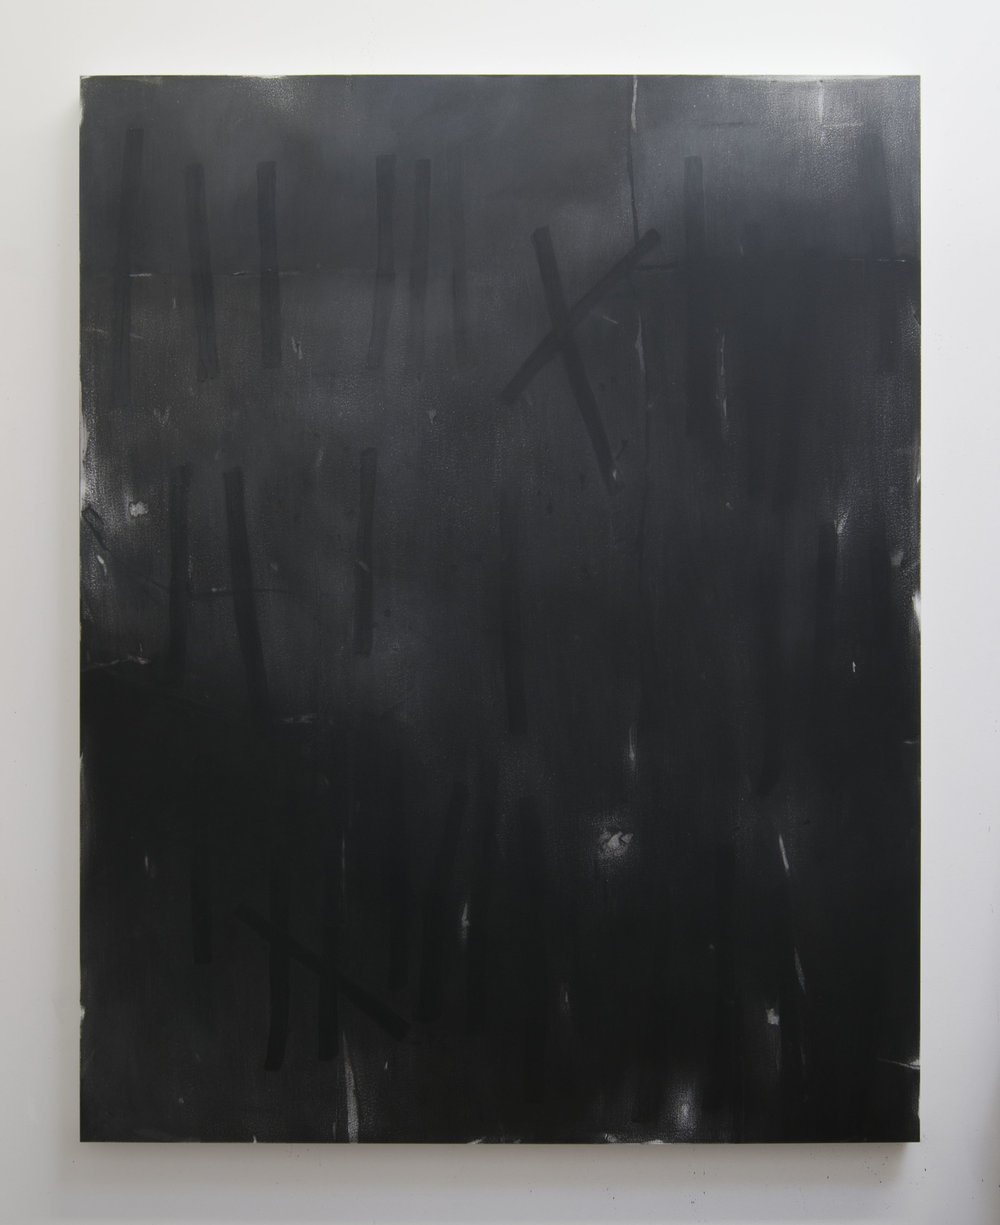 Long Gone, 2015  Acrylic on panel, 56 x 44 inches